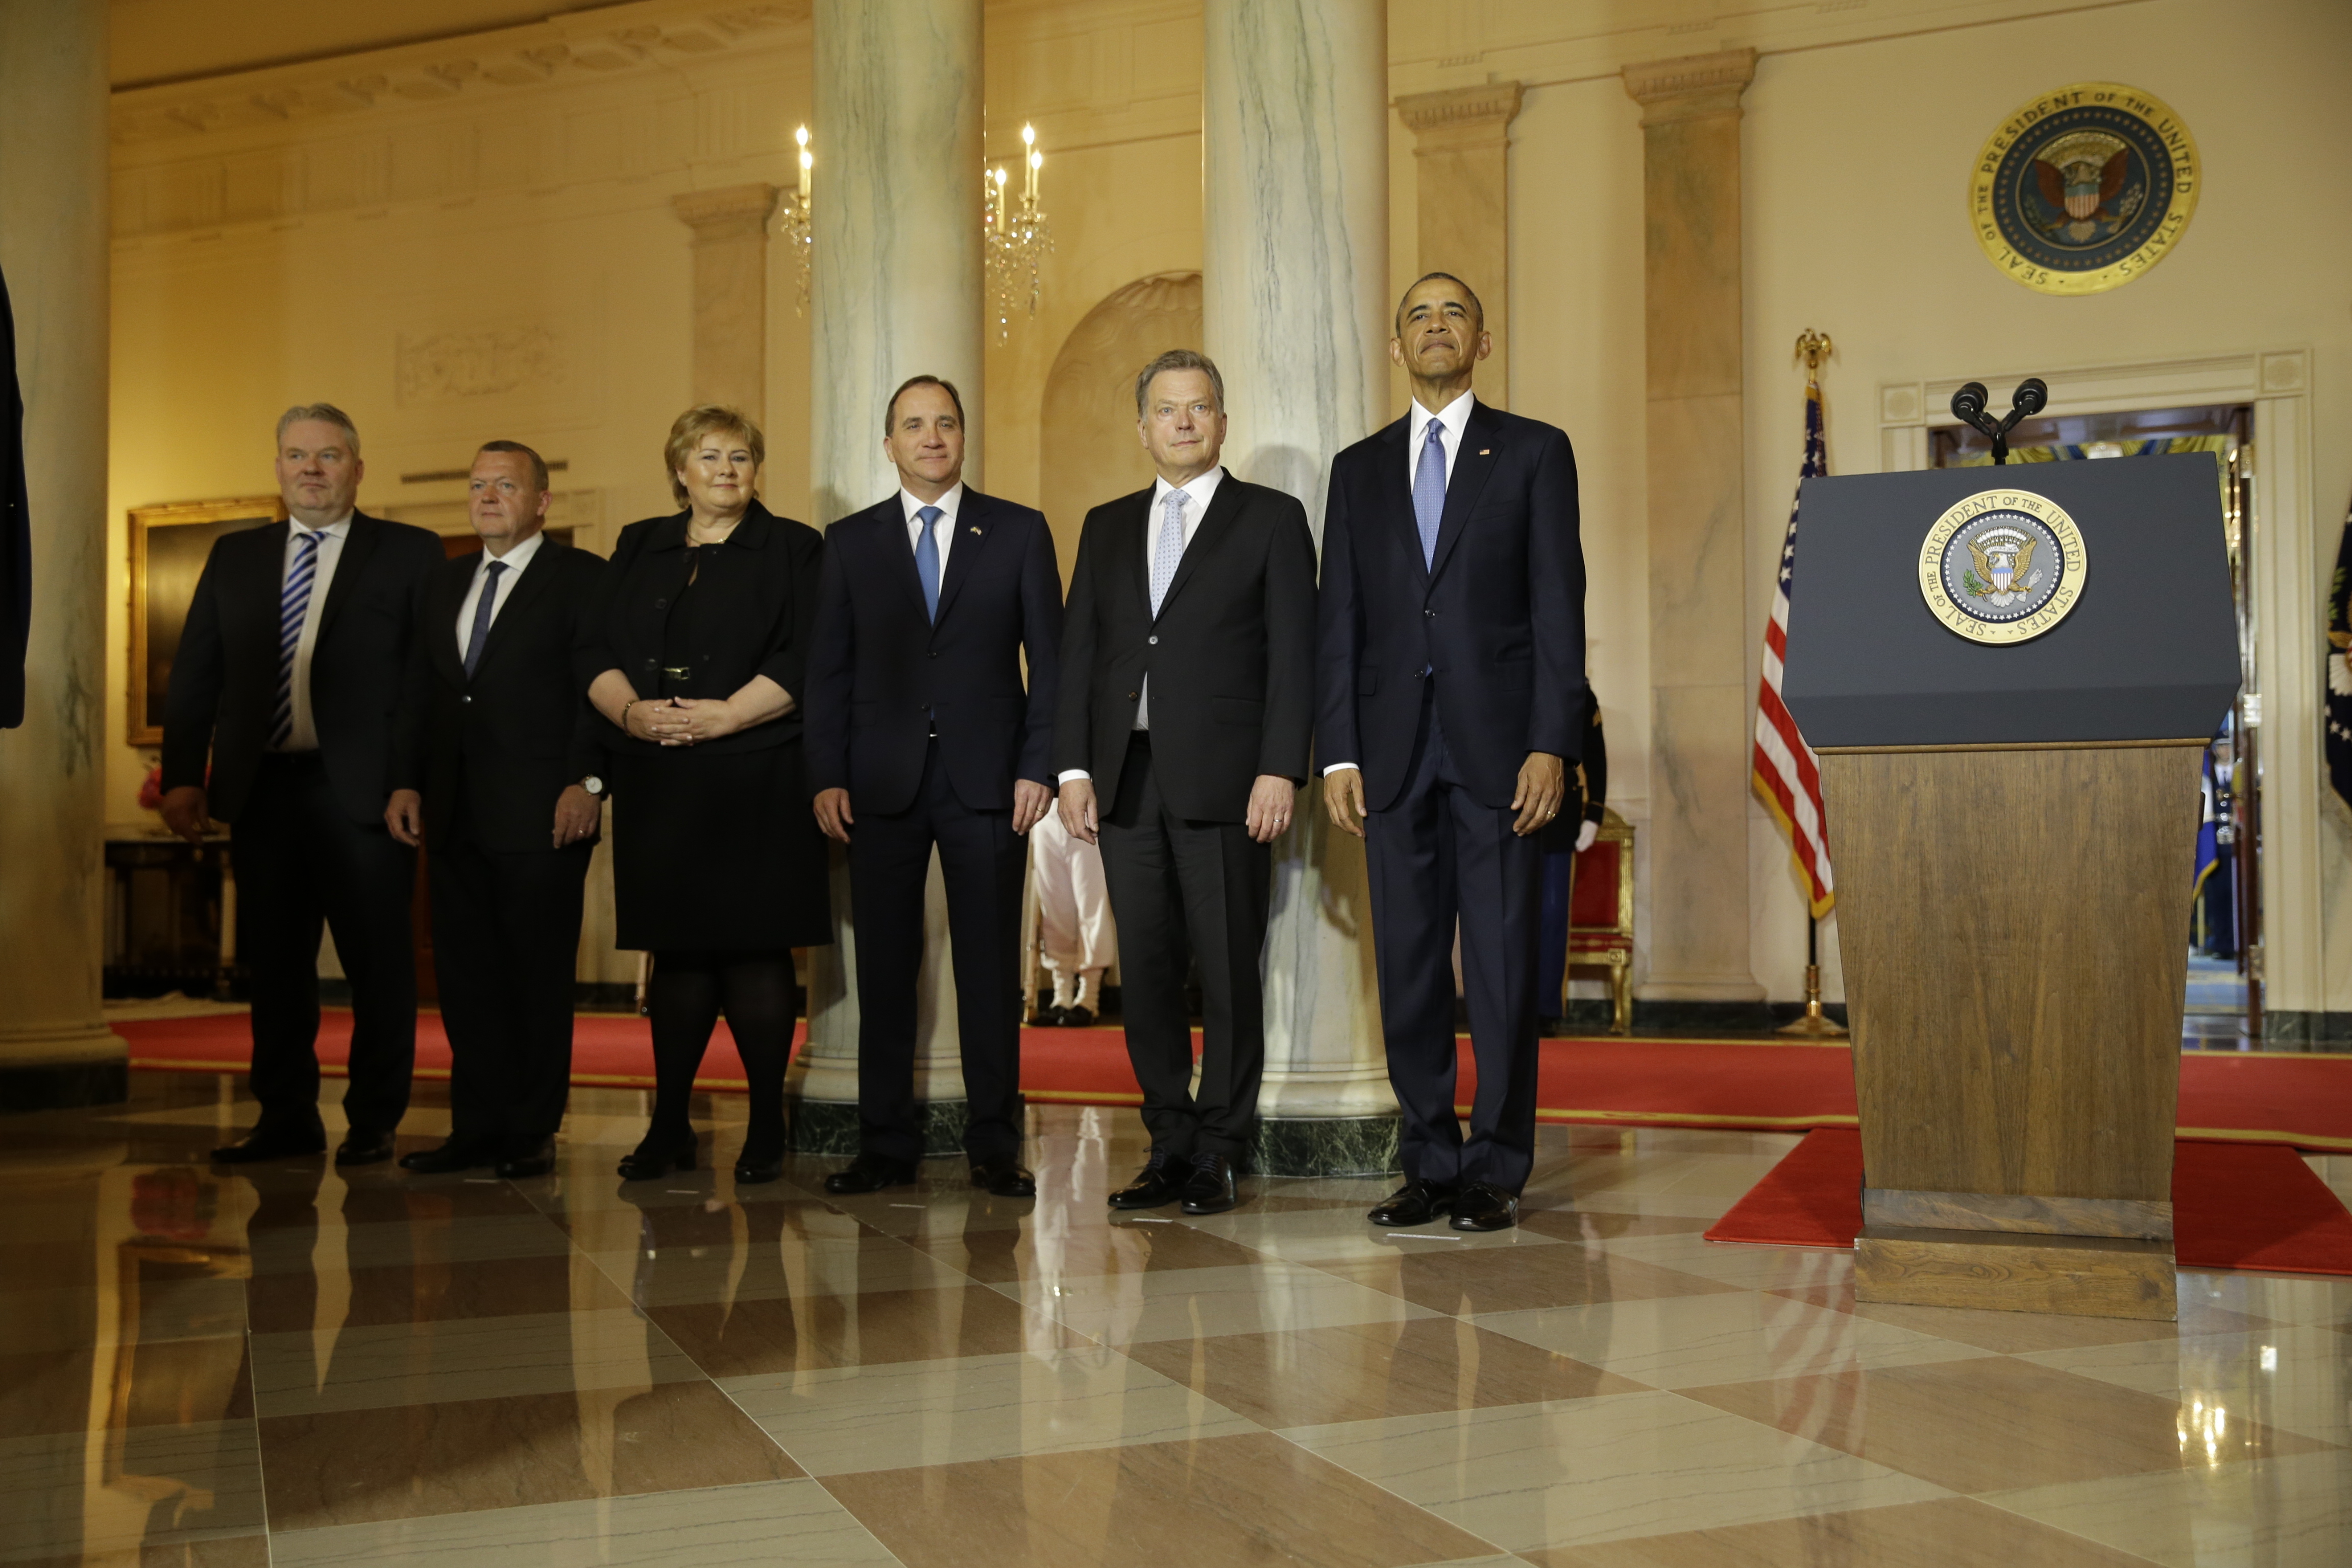 President Barack Obama stands with, from left, Iceland's PM Sigurdur Ingi Johannsson, Denmark's PM Lars Lokke Rasmussen, Norwegian PM Erna Solberg, Sweden's PM Stefan Lofven and Finnish President Sauli Niinisto at the outset of the Nordic summit at t...